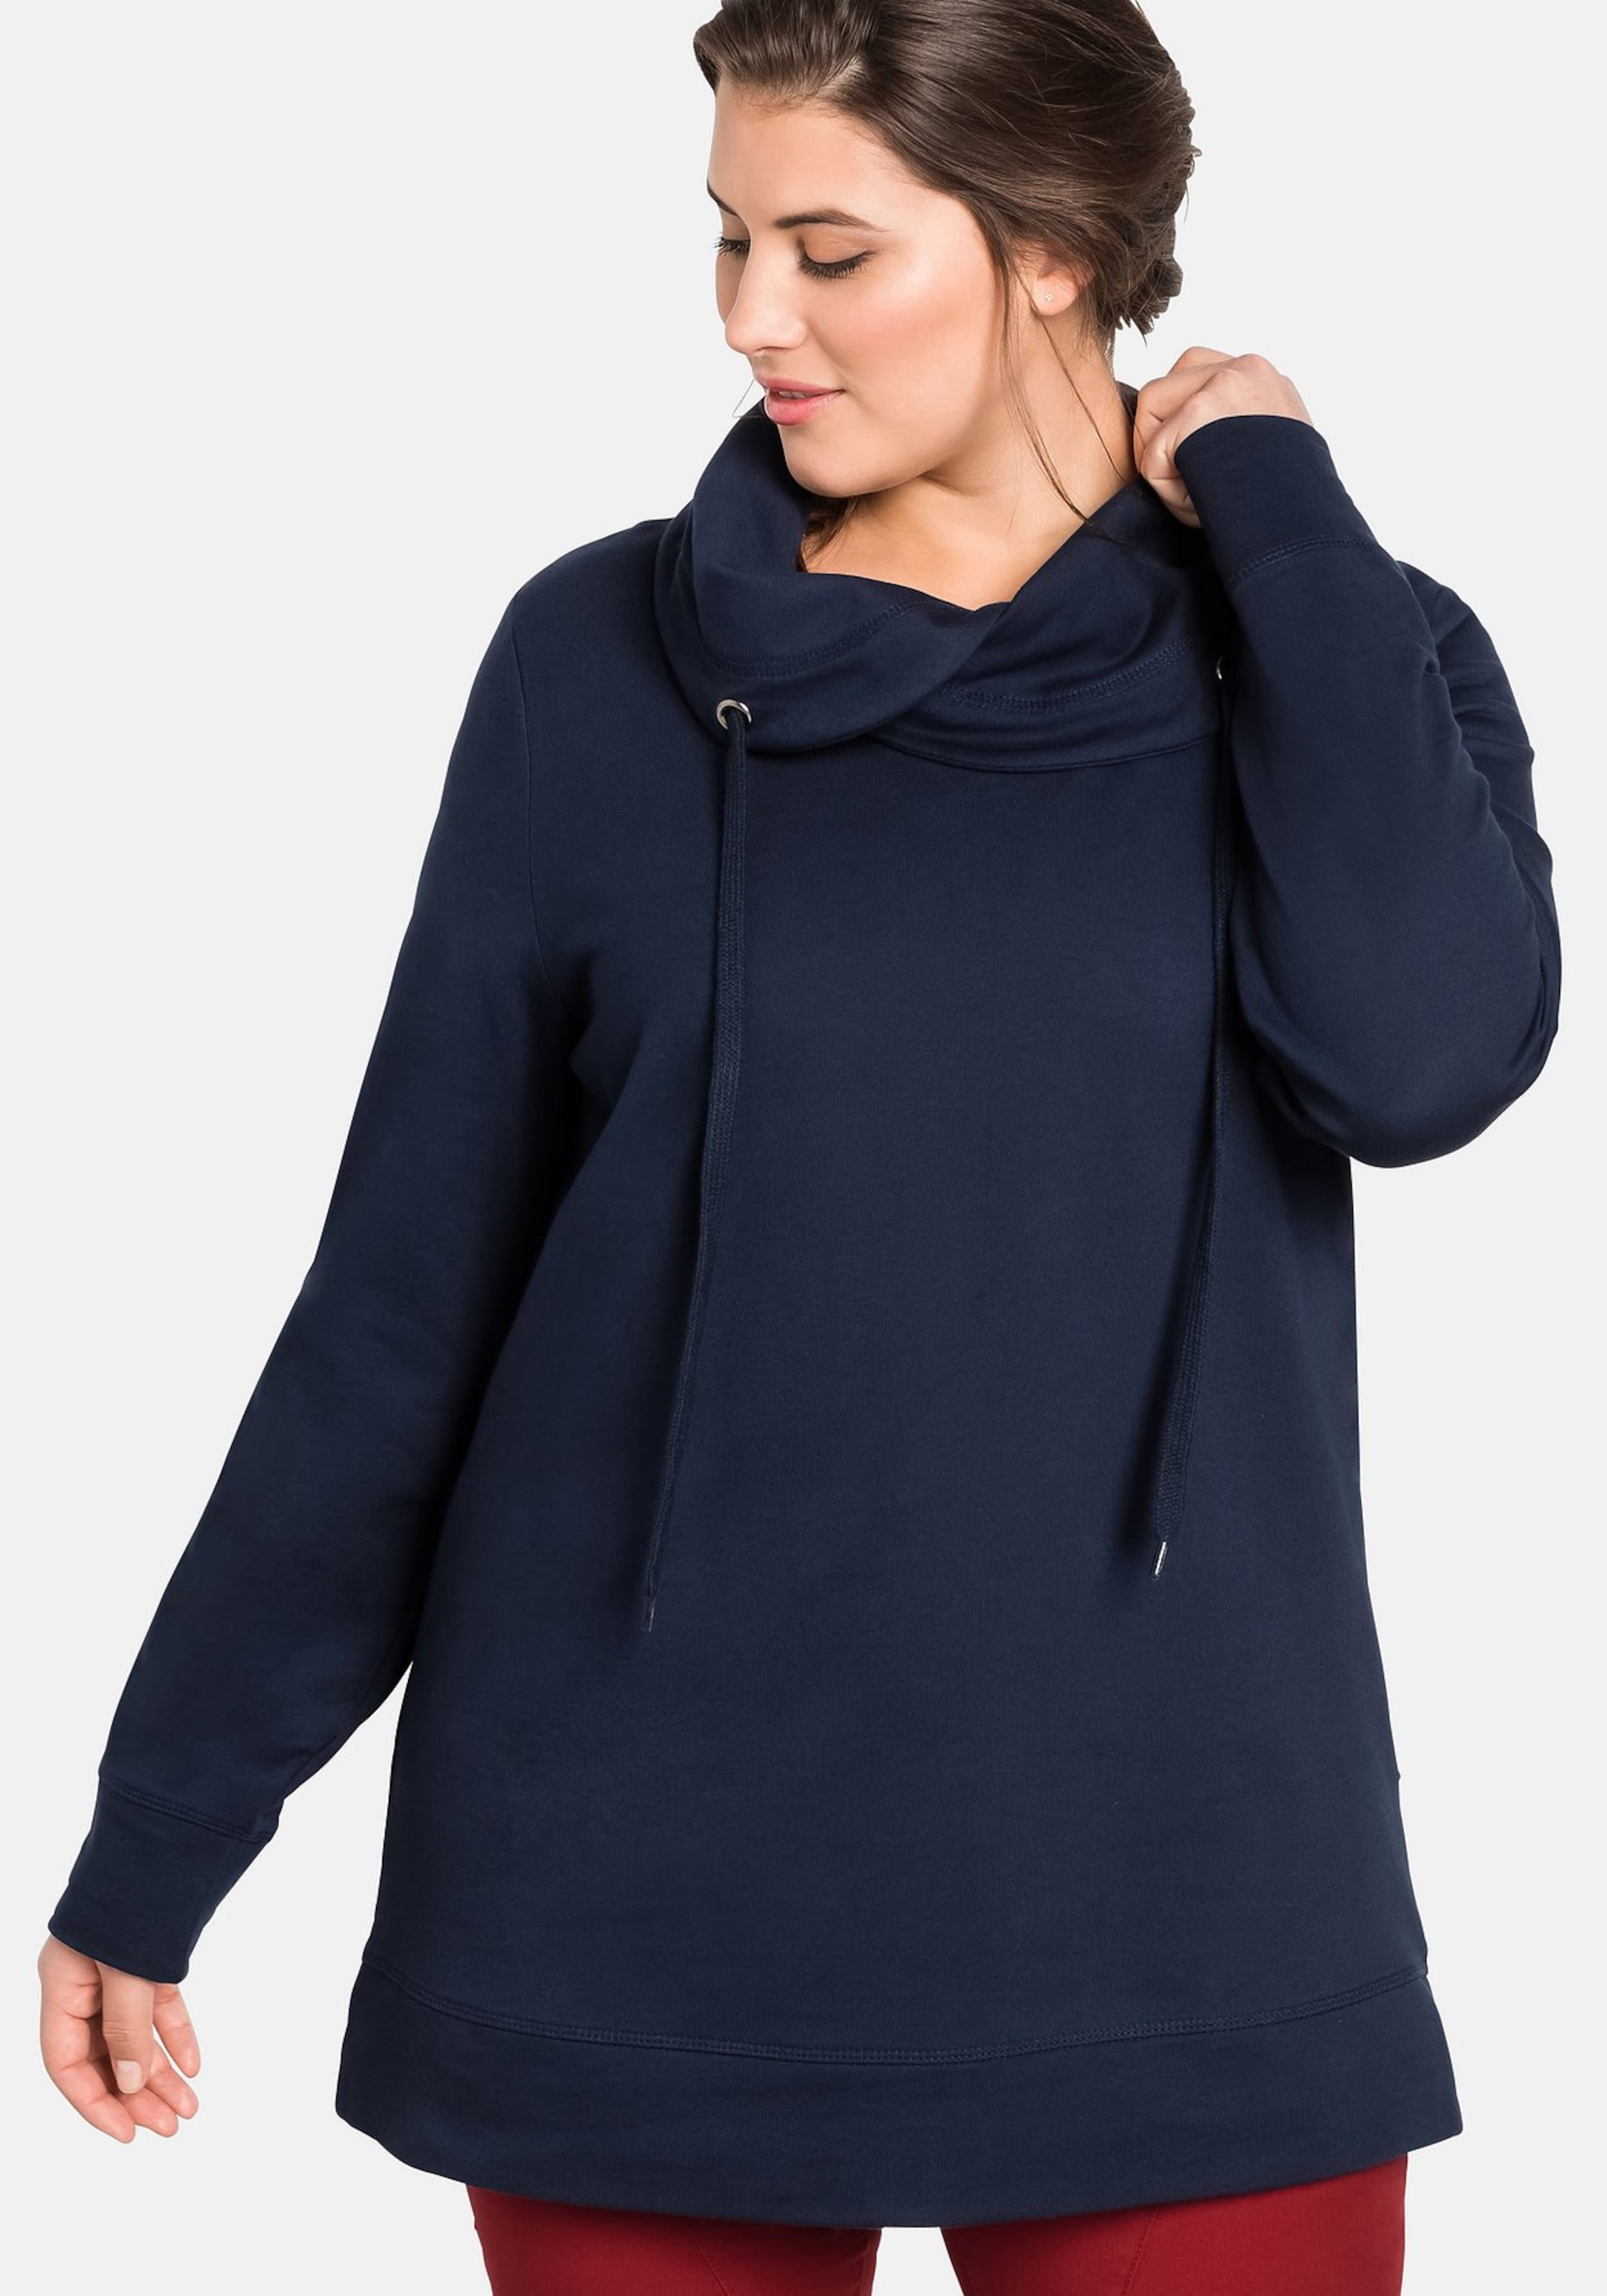 Casual In Casual Casual Marine Sheego Sweatshirt In Marine Sheego Sweatshirt Sheego UpLqMVGSz